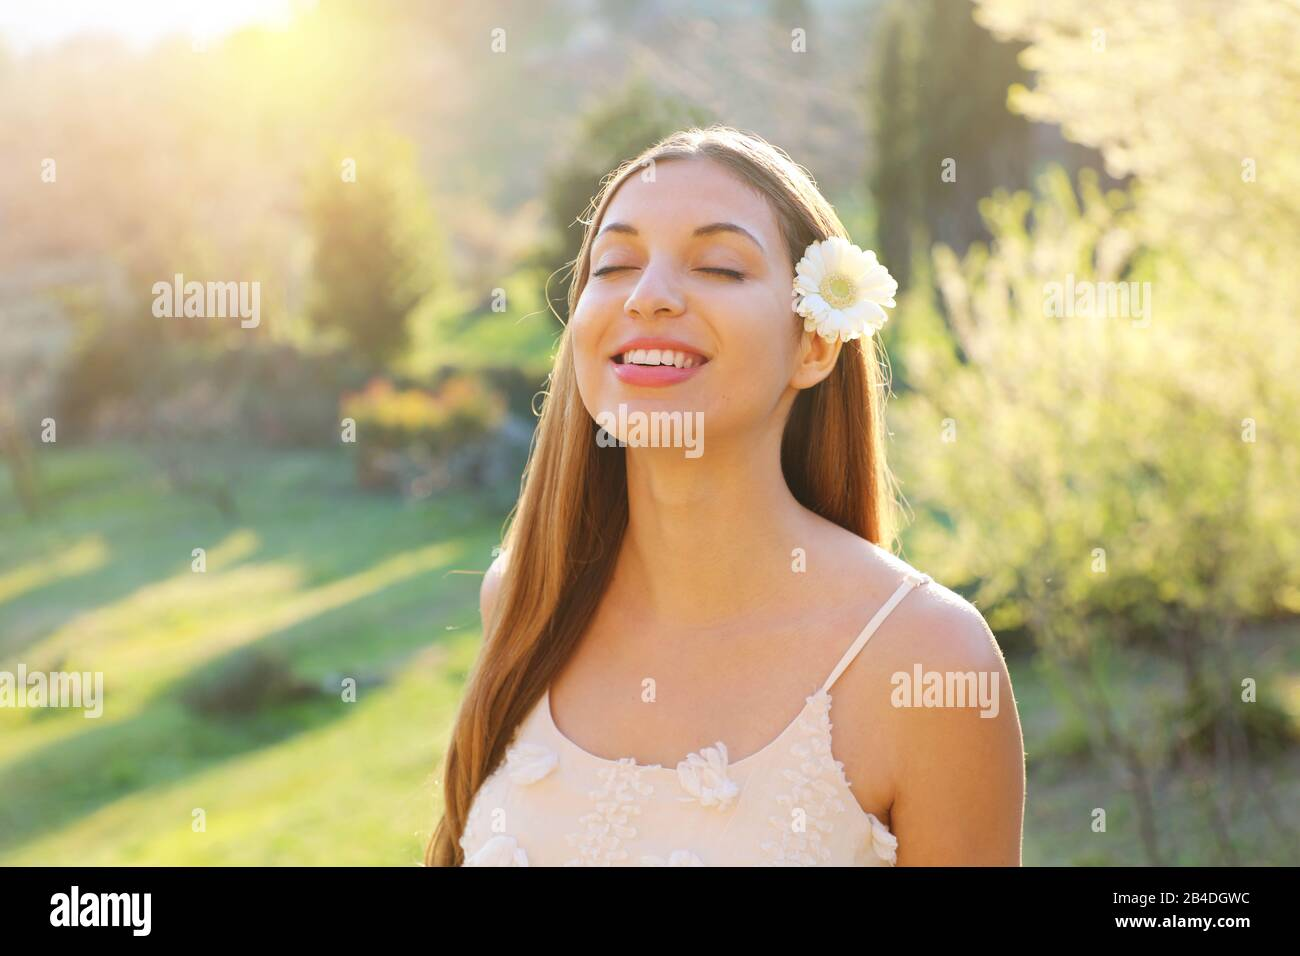 Pretty beautiful girl with closed eyes and flower on ear smiling enjoying breathing fresh air outdoor Stock Photo